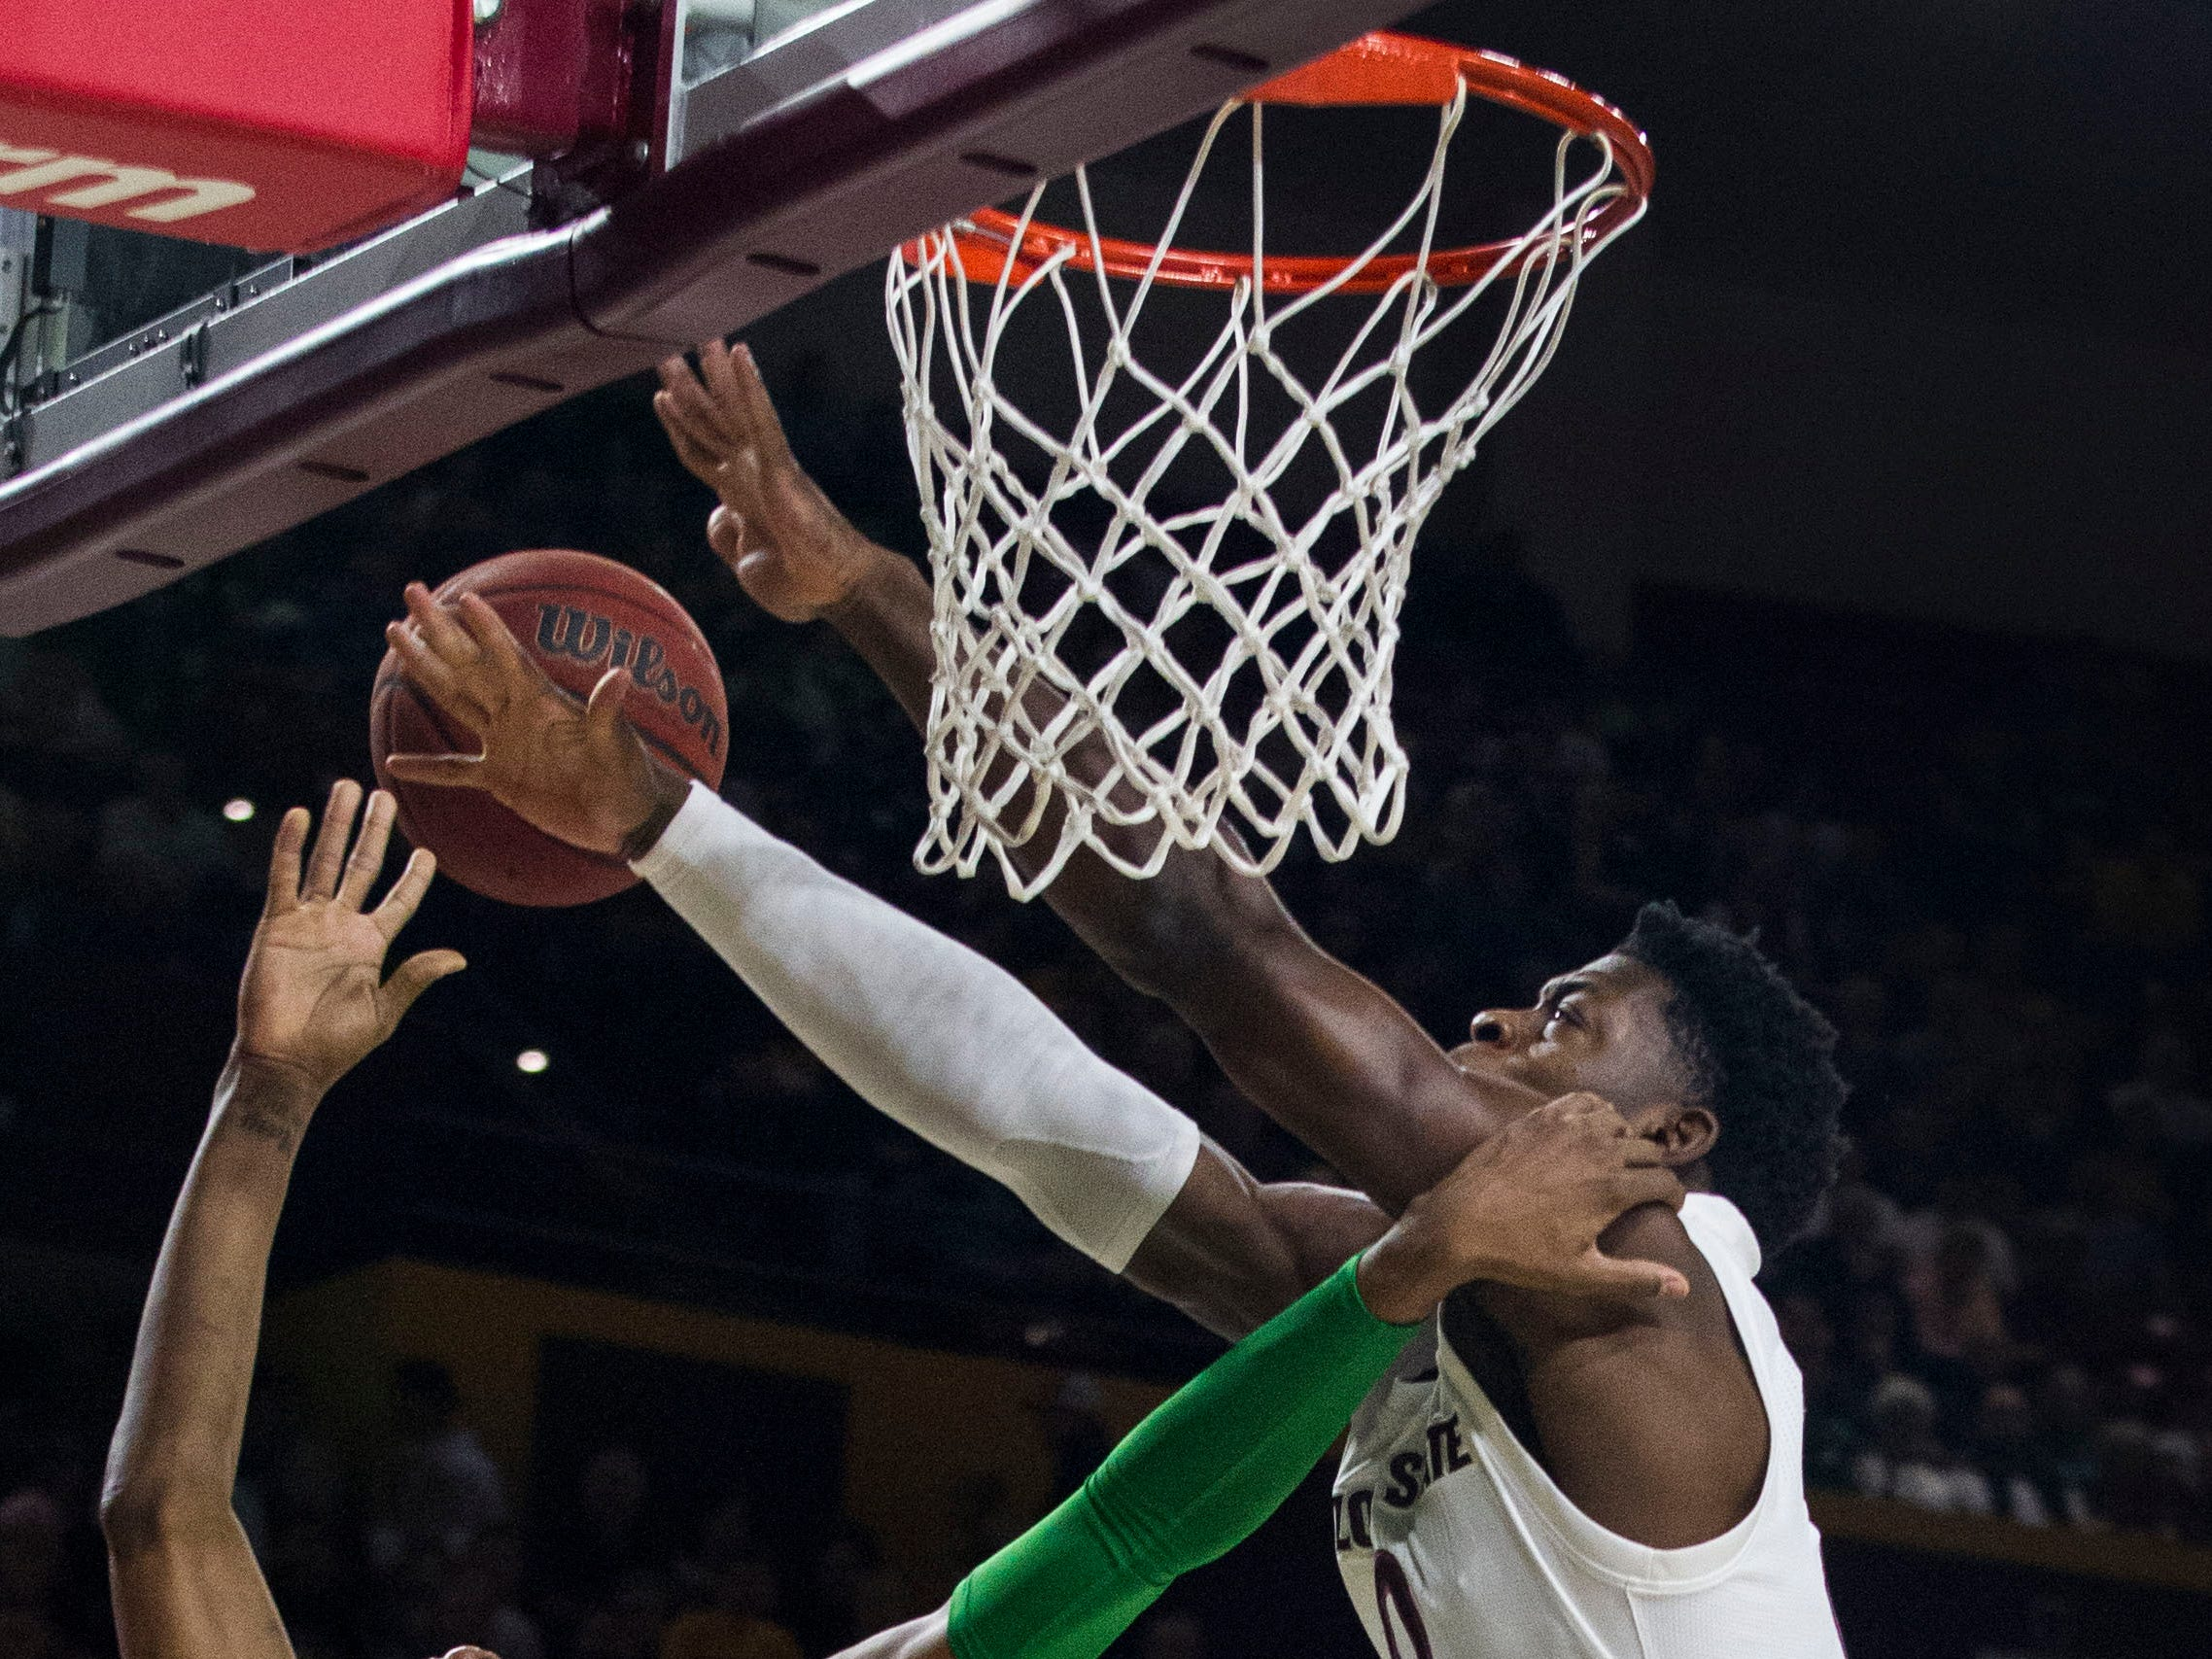 Arizona State's Luguentz Dort (0) fouls Oregon's Louis King (2) during the first half, Saturday, Jan. 19, 2019, in Tempe, Ariz. (AP Photo/Darryl Webb)